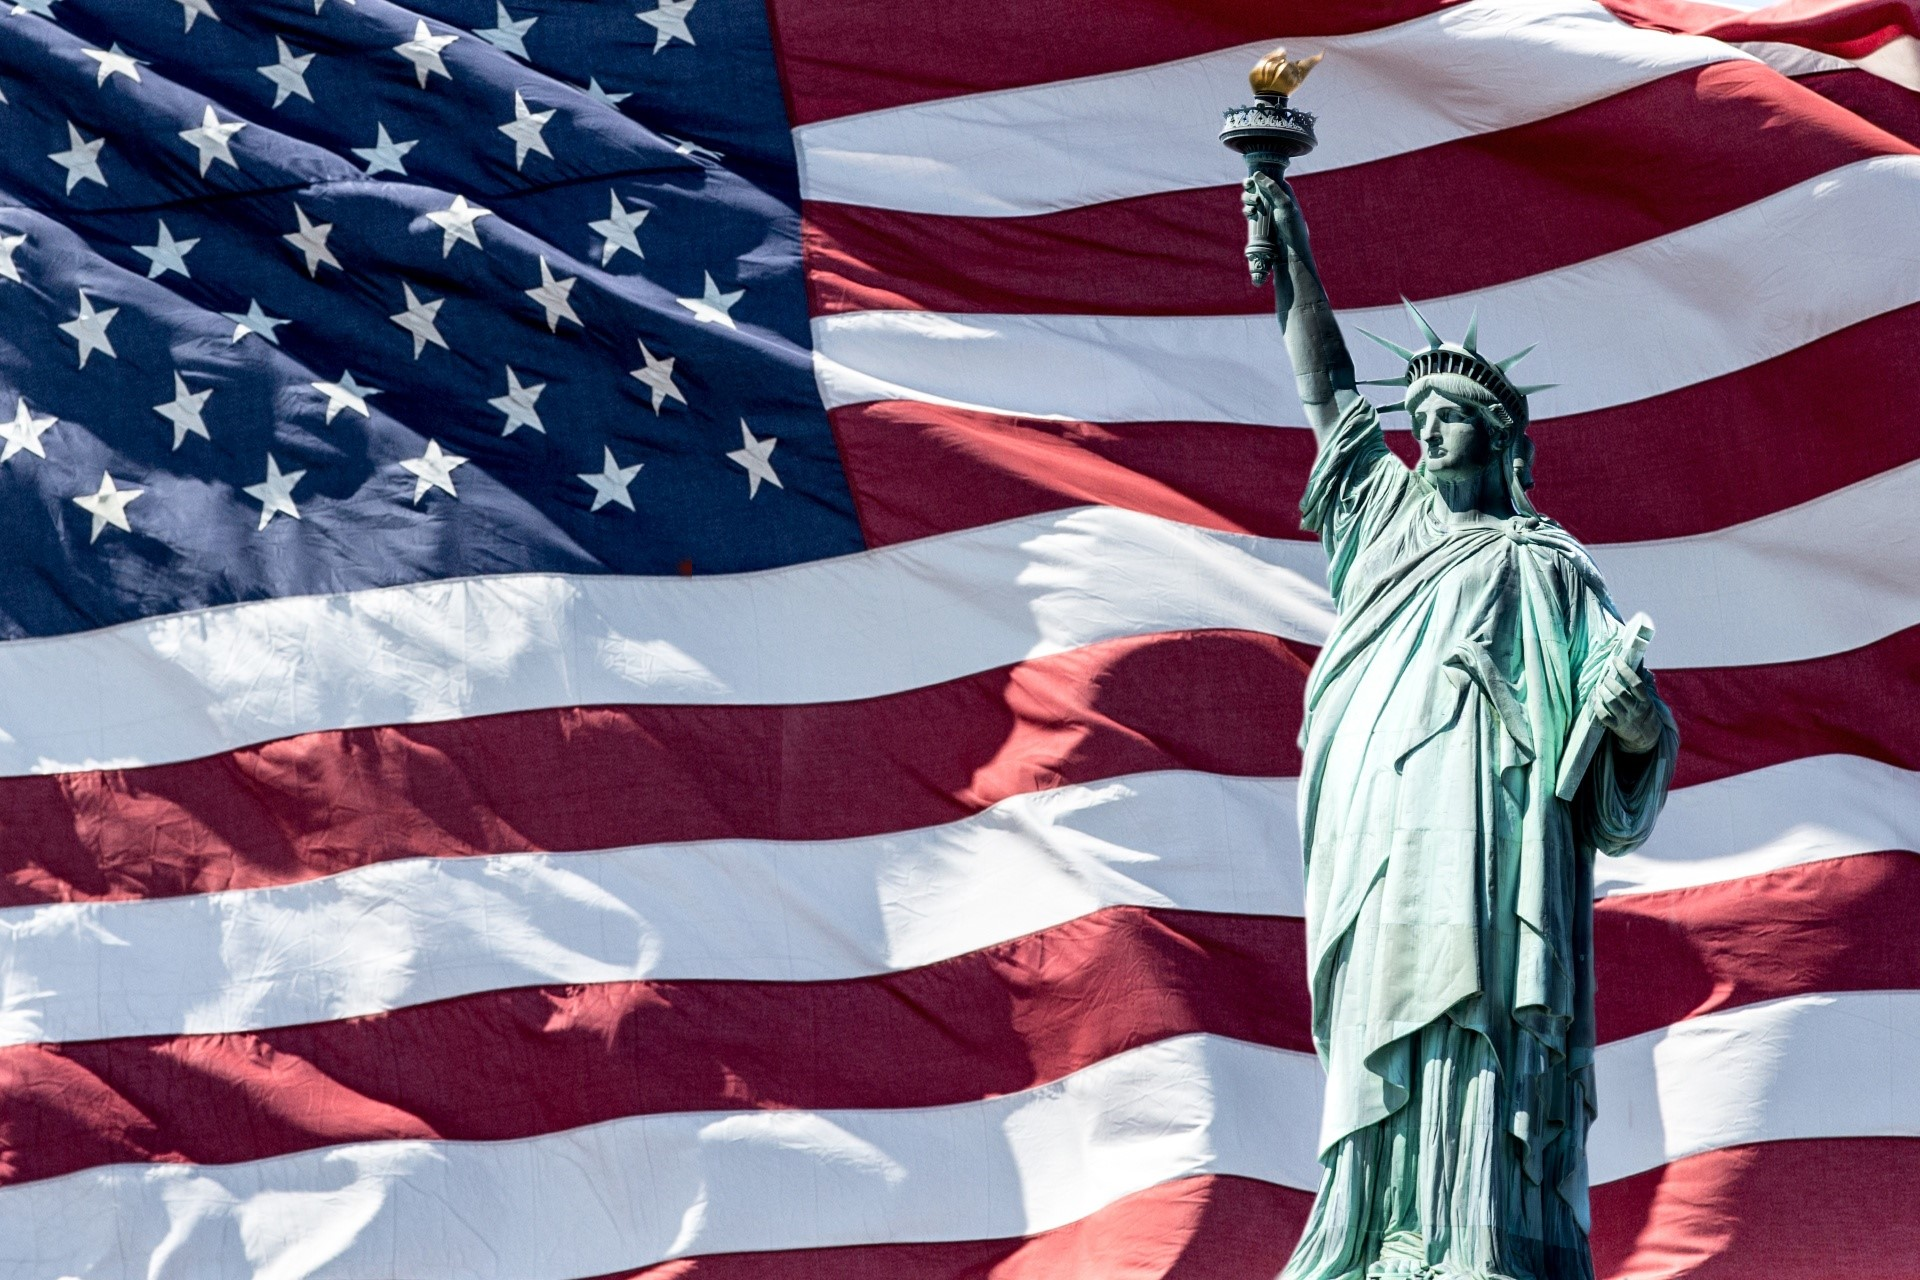 Lady_liberty_and_flag